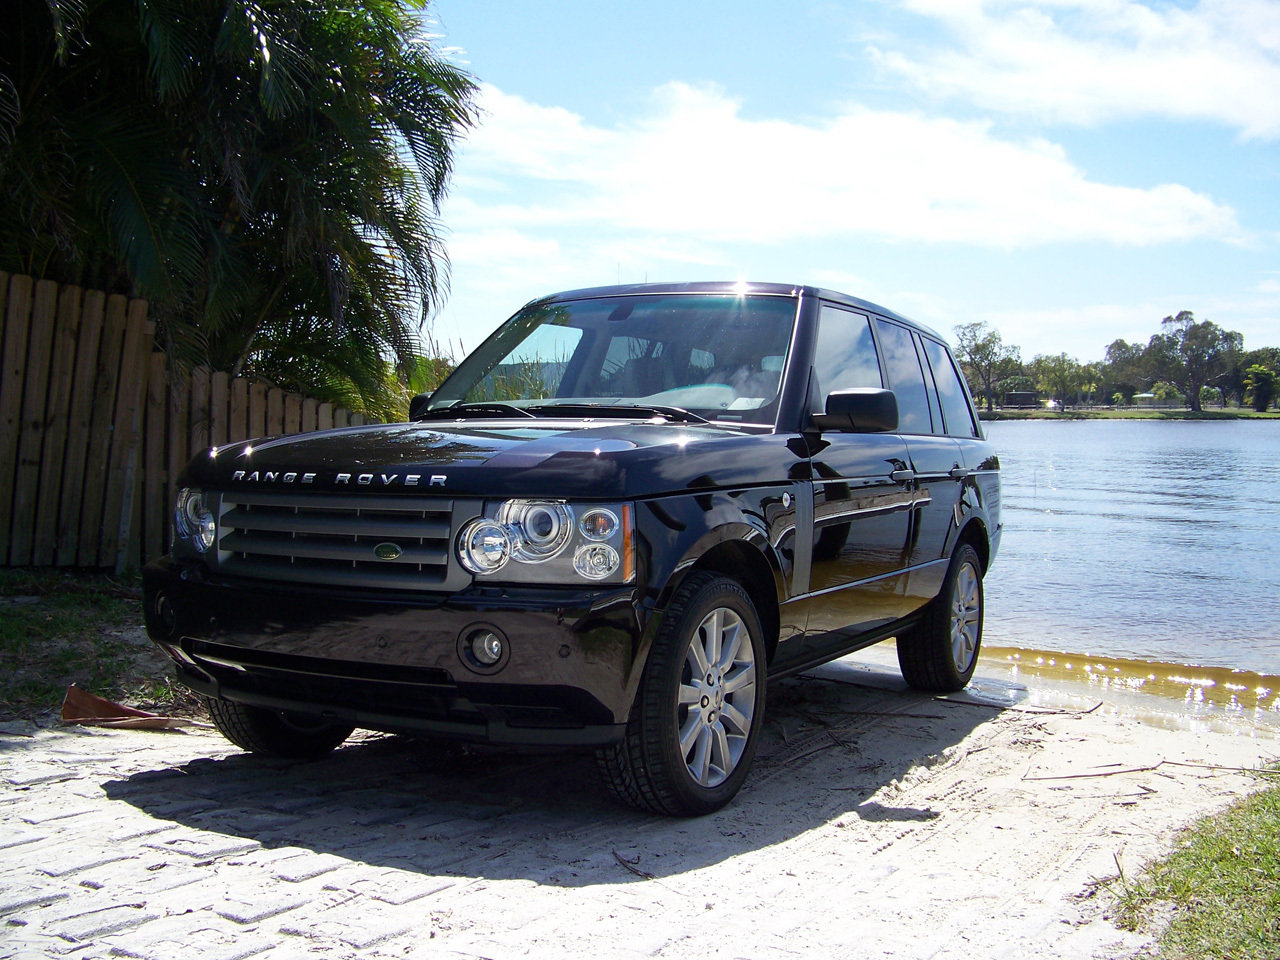 2009 range rover hse picture 296864 car review top speed. Black Bedroom Furniture Sets. Home Design Ideas